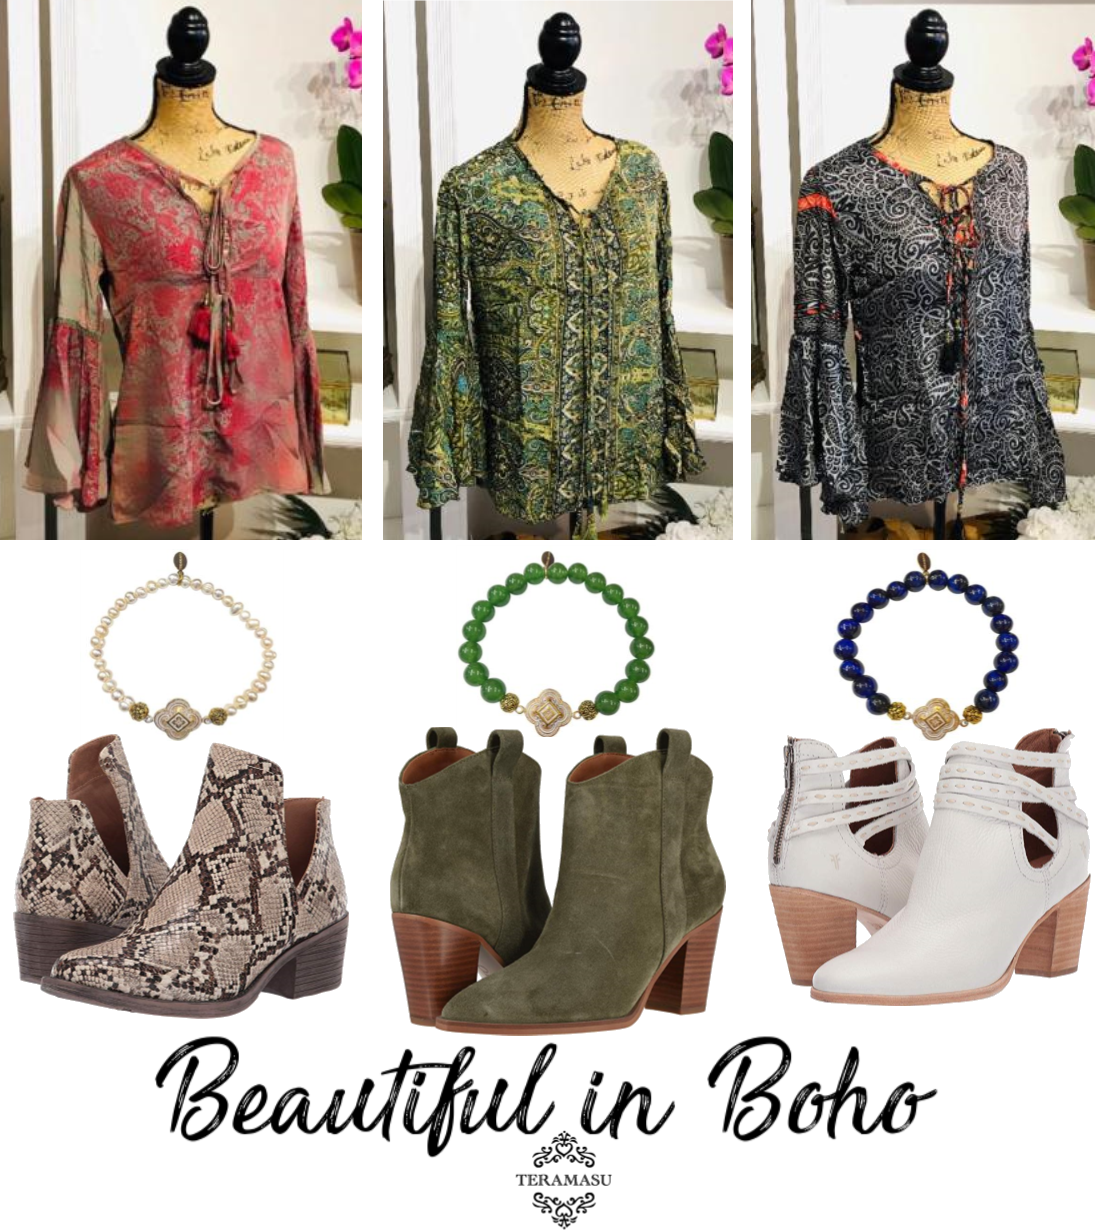 Fashion Friday: Beautiful in Boho New Arrivals and Outfit Inspiration for Fall from Teramasu